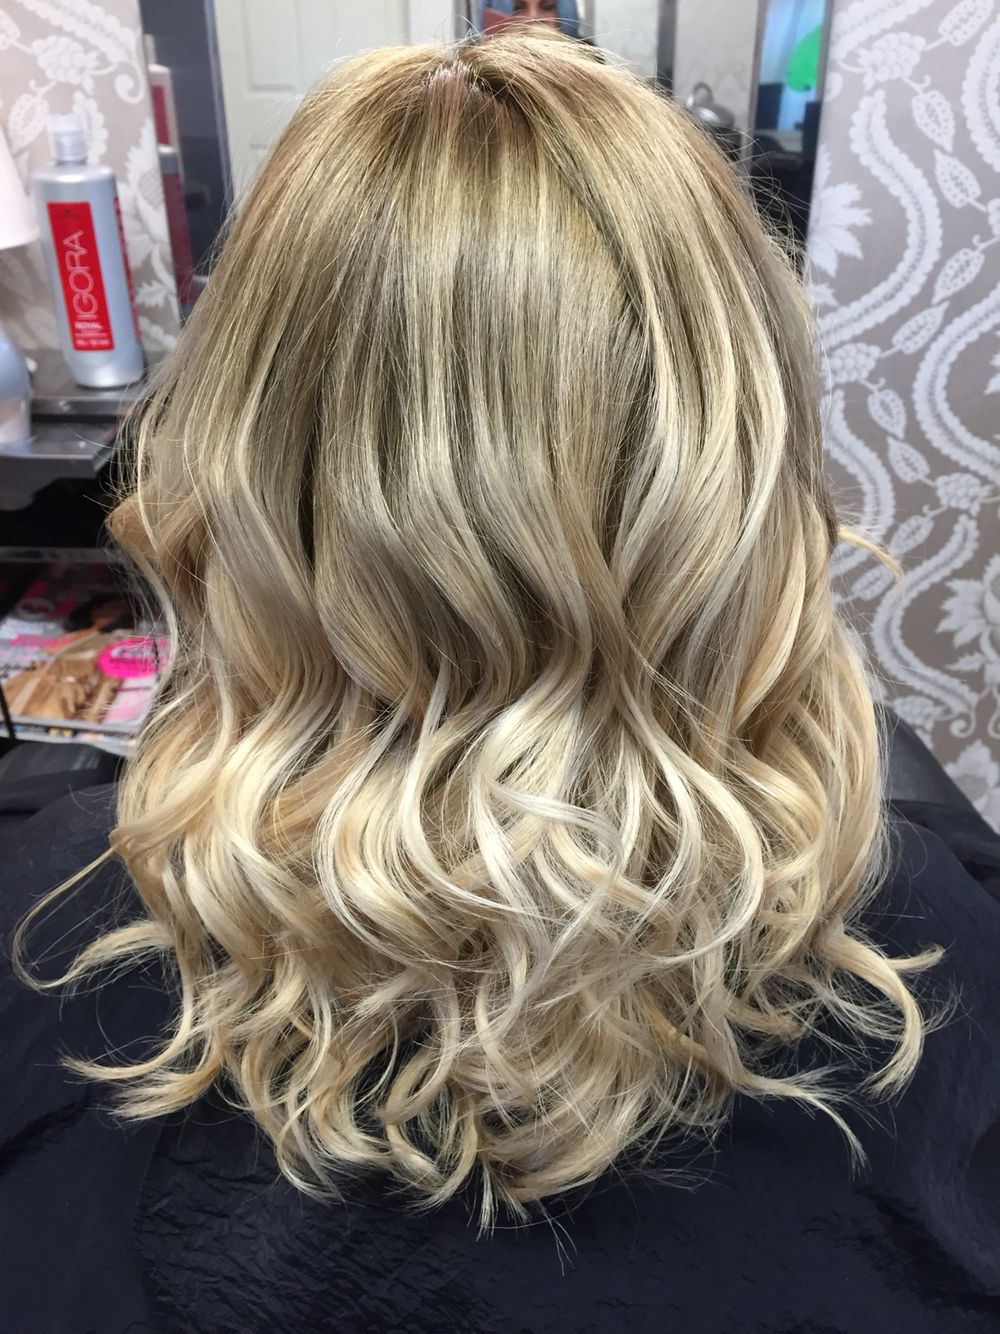 Ballayage Blond tout natural looking light brown and blonde ballayage ombre | blonde hair